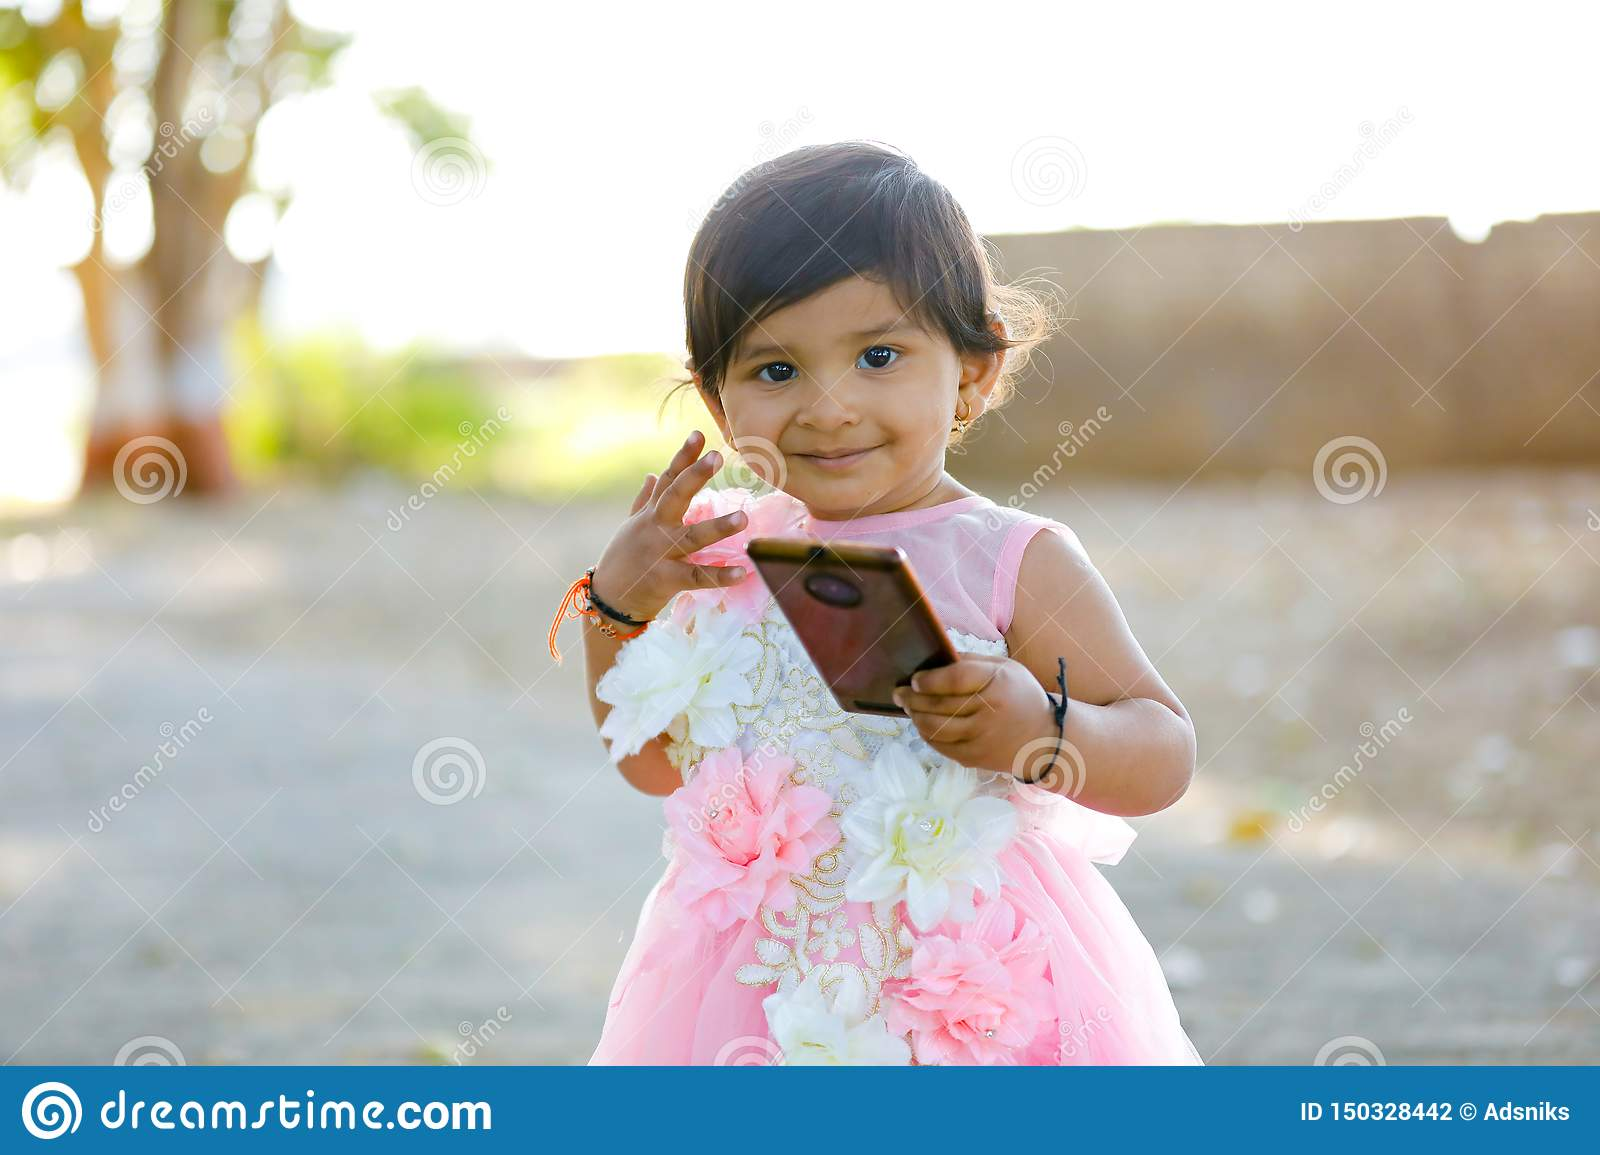 2 811 Cute Indian Baby Girl Photos Free Royalty Free Stock Photos From Dreamstime